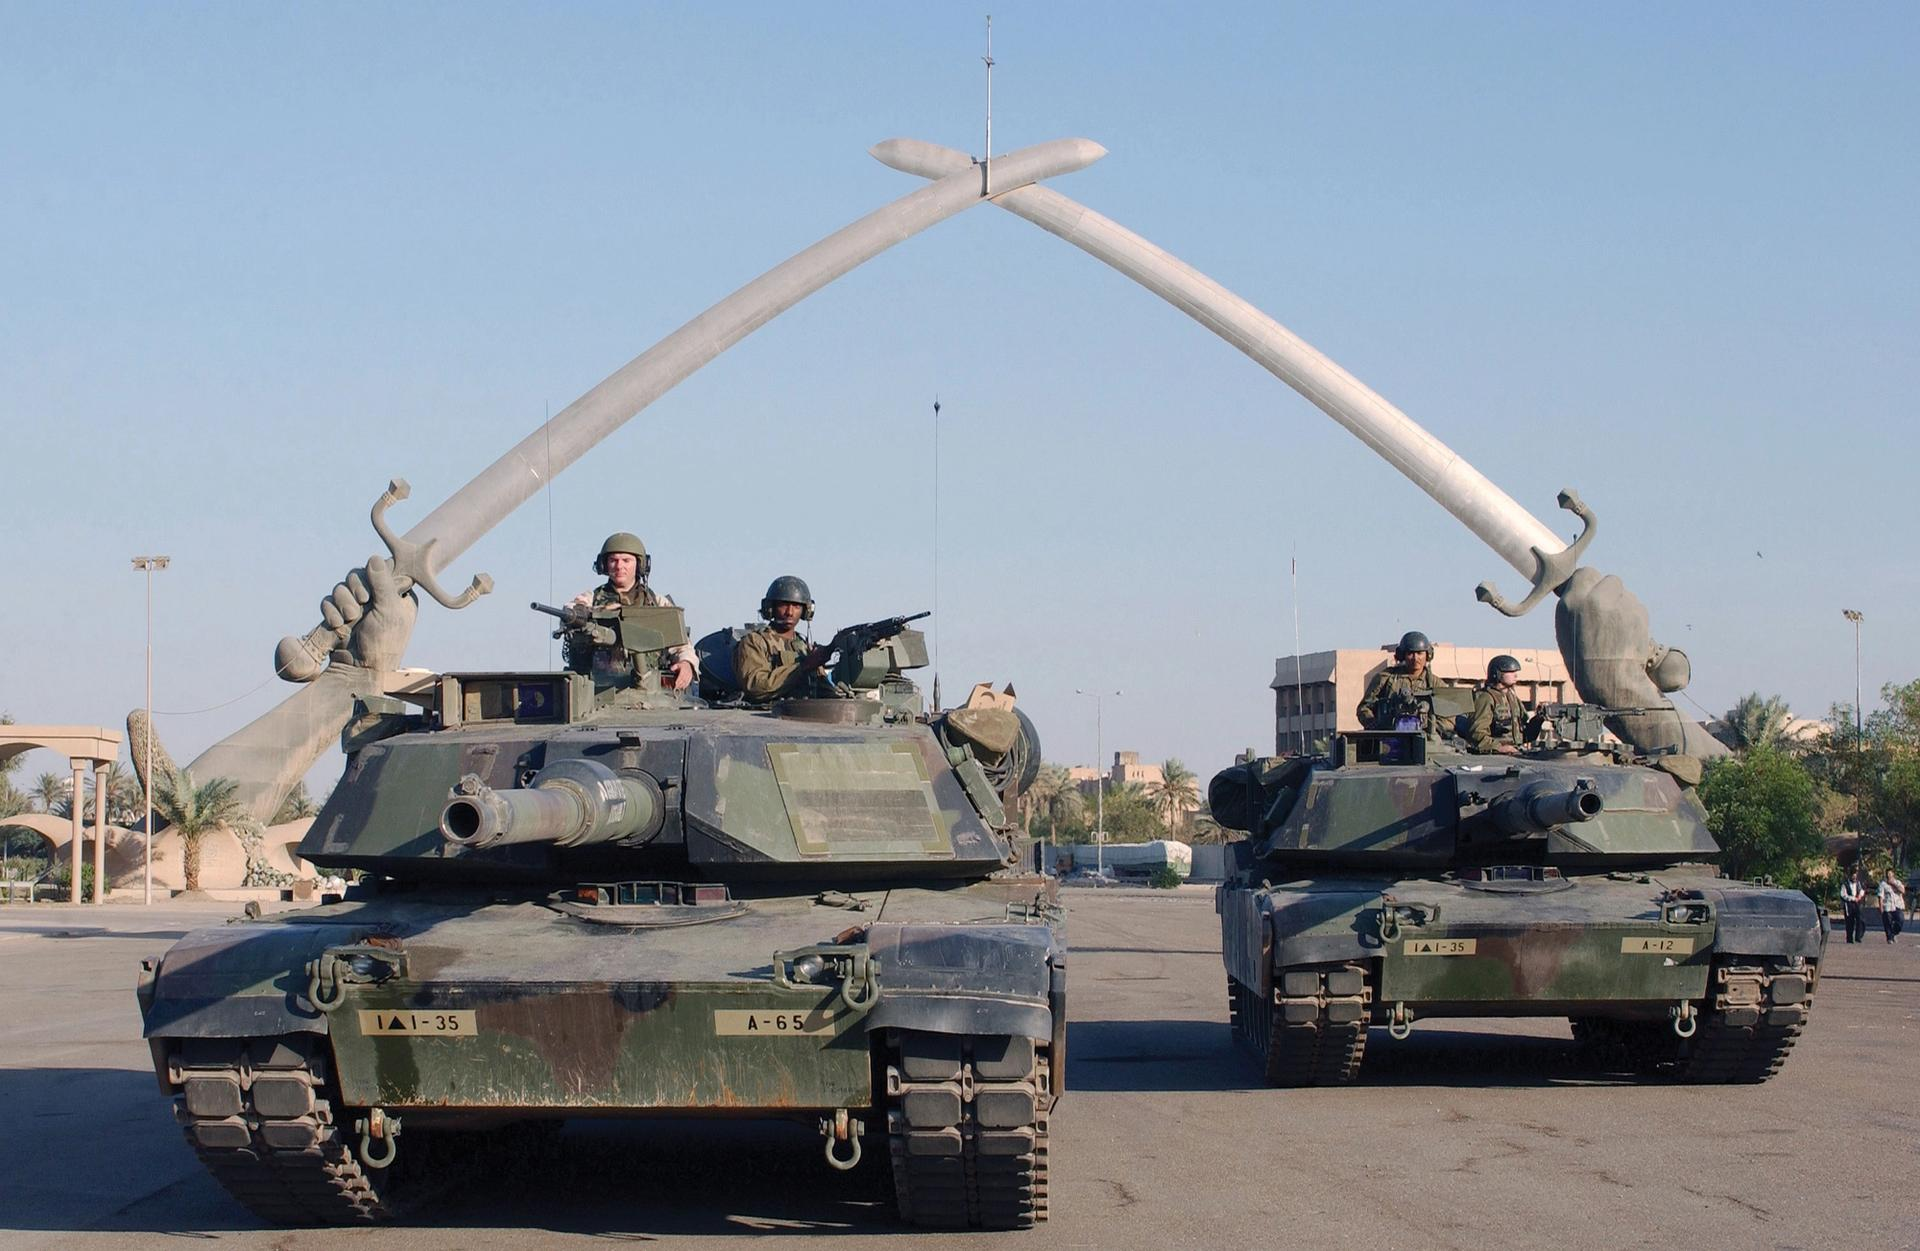 """US Army tanks and soldiers stop under the """"Hands of Victory"""" in Ceremony Square, Baghdad, during Operation Iraqi Freedom, 13 November 2003 Photo: Technical Sergeant John L. Houghton, Jr, United States Air Force"""